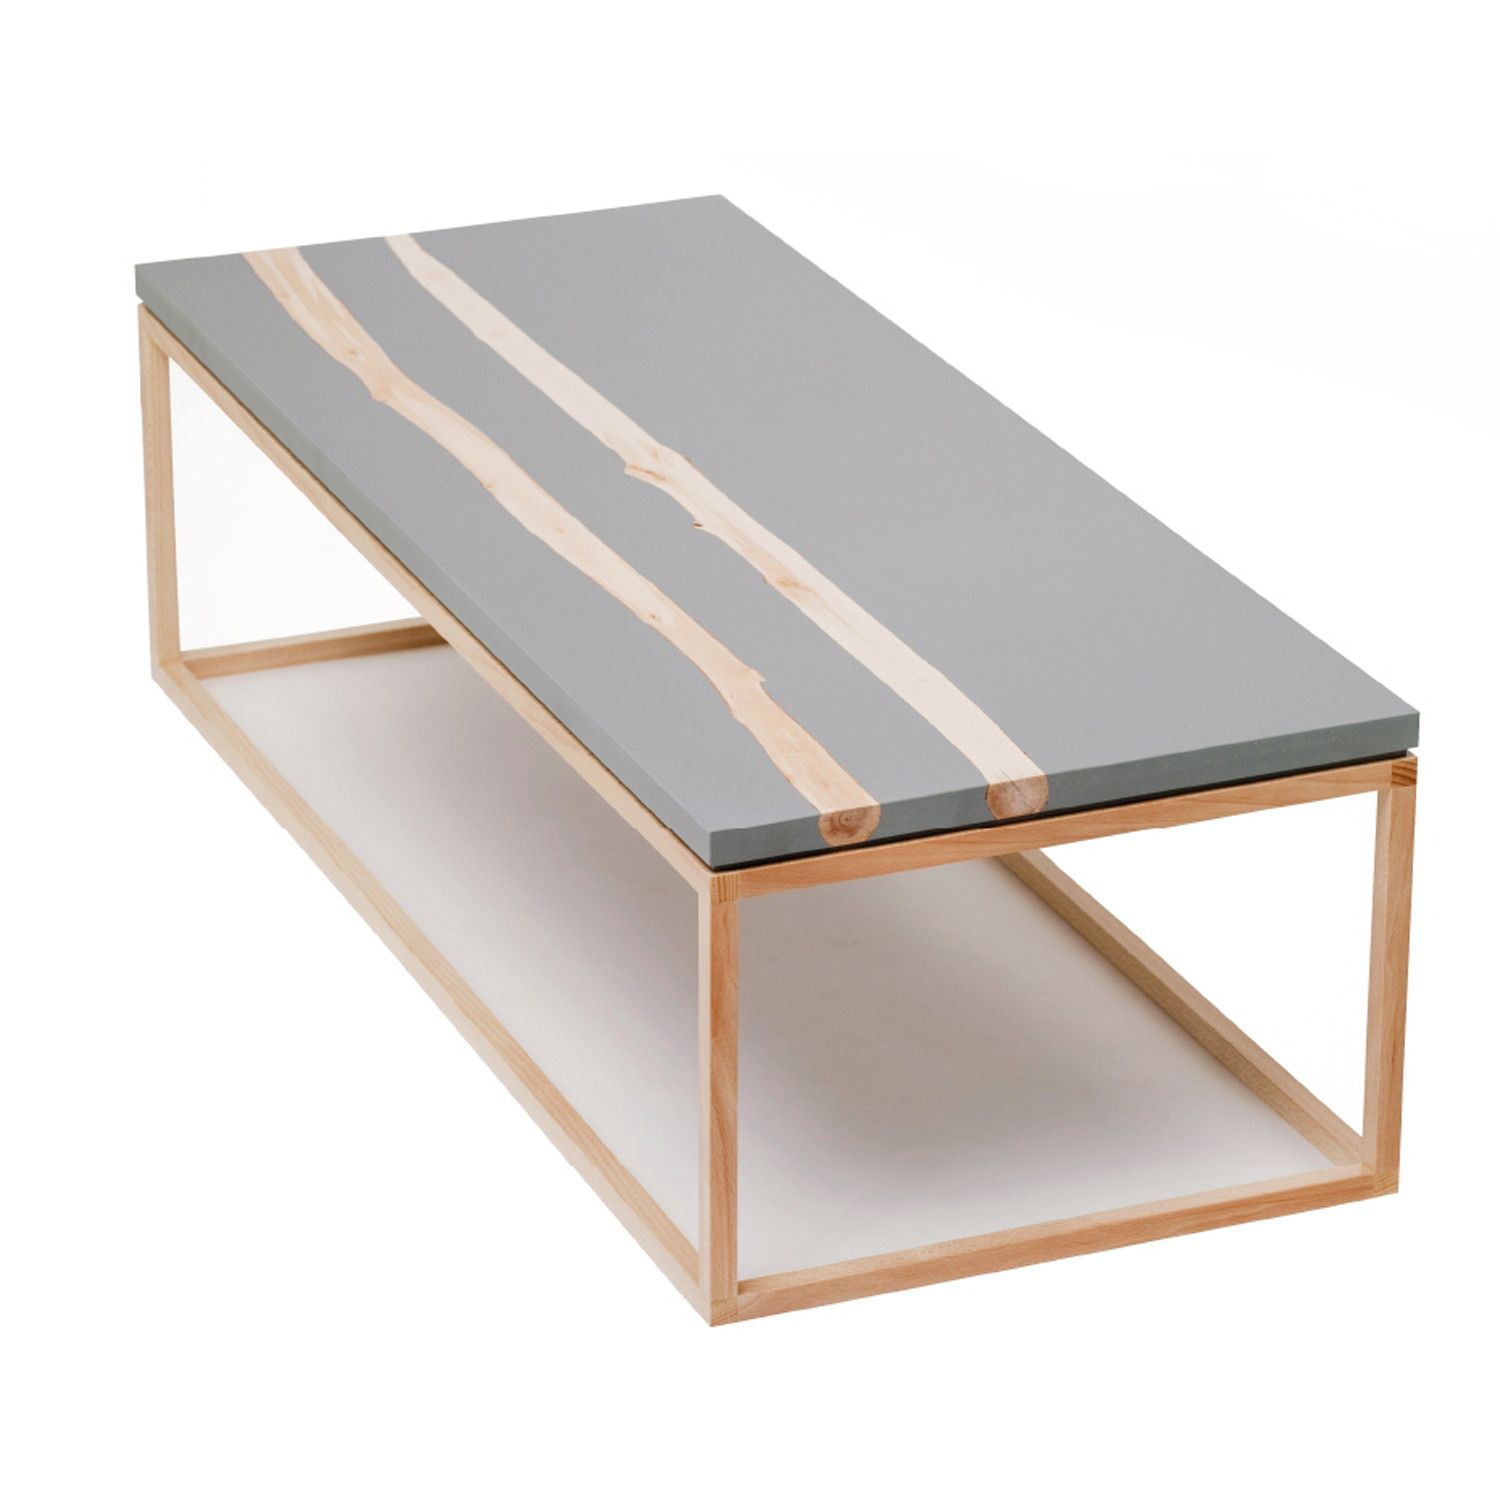 Elegant Coffee Table Bleached Beech Wood With Salvage Birch